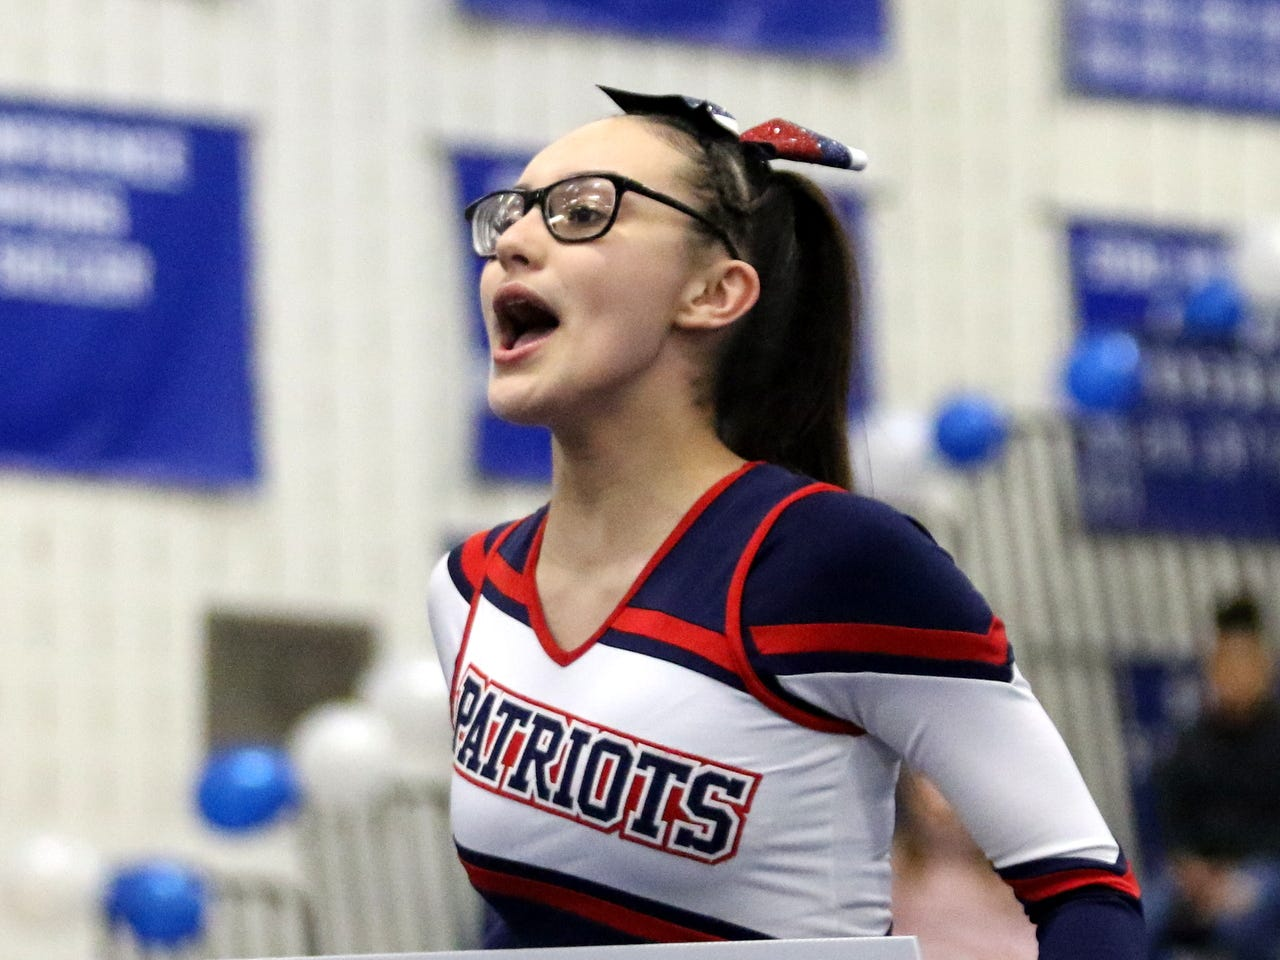 Binghamton varsity cheerleaders compete at the STAC Winter Cheer Championships on Feb. 16, 2019 at Horseheads Middle School.